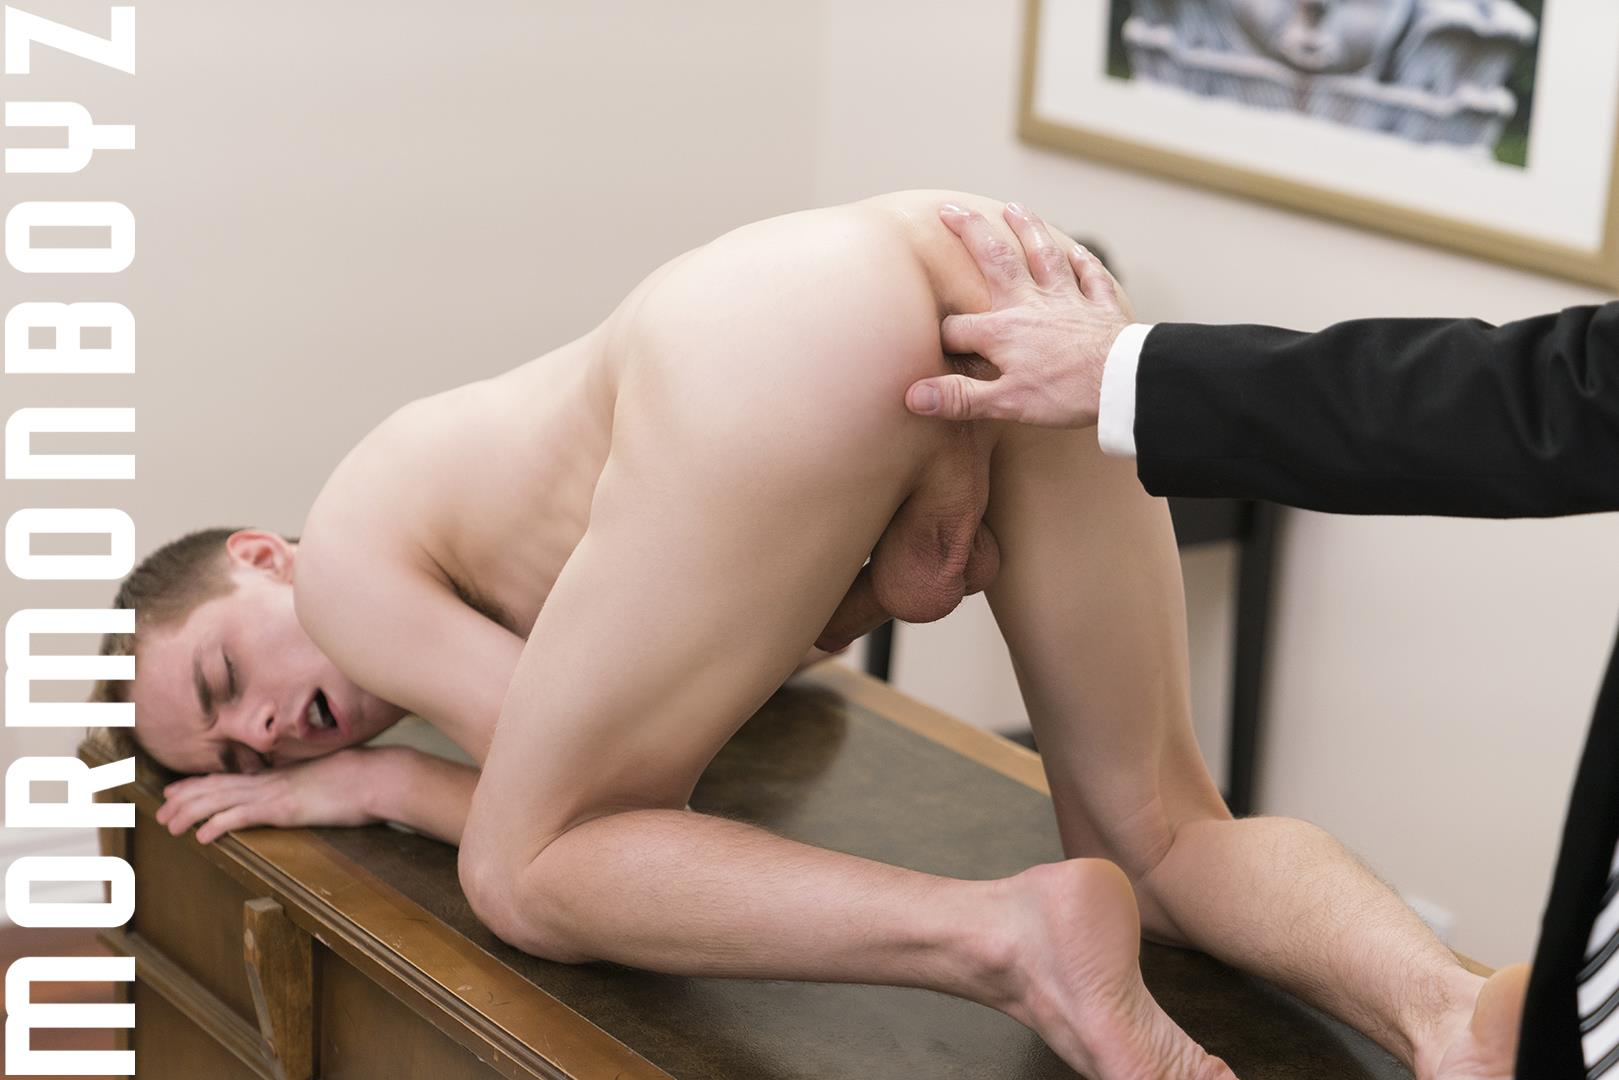 Mormon-Boyz-Elder-Dalton-and-Bishop-Hart-Bareback-Twink-By-Older-Man-08 Big Dick Mormon Twink Takes A Thick Bareback Cock